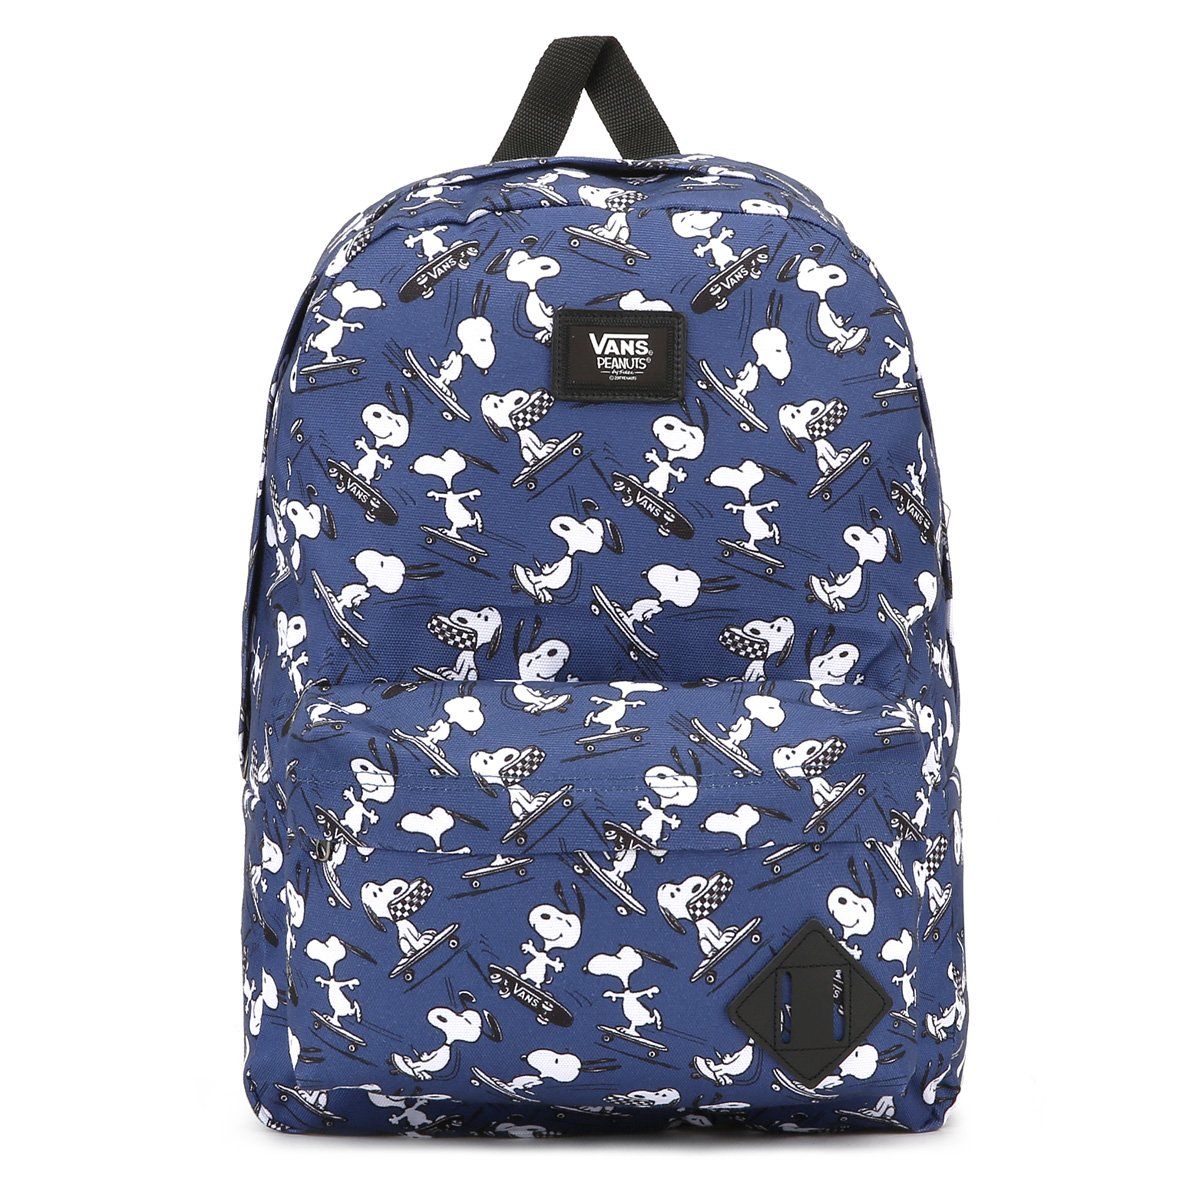 Vans OLD SKOOL II BACKPACK Mochila tipo casual cm liters Azul True